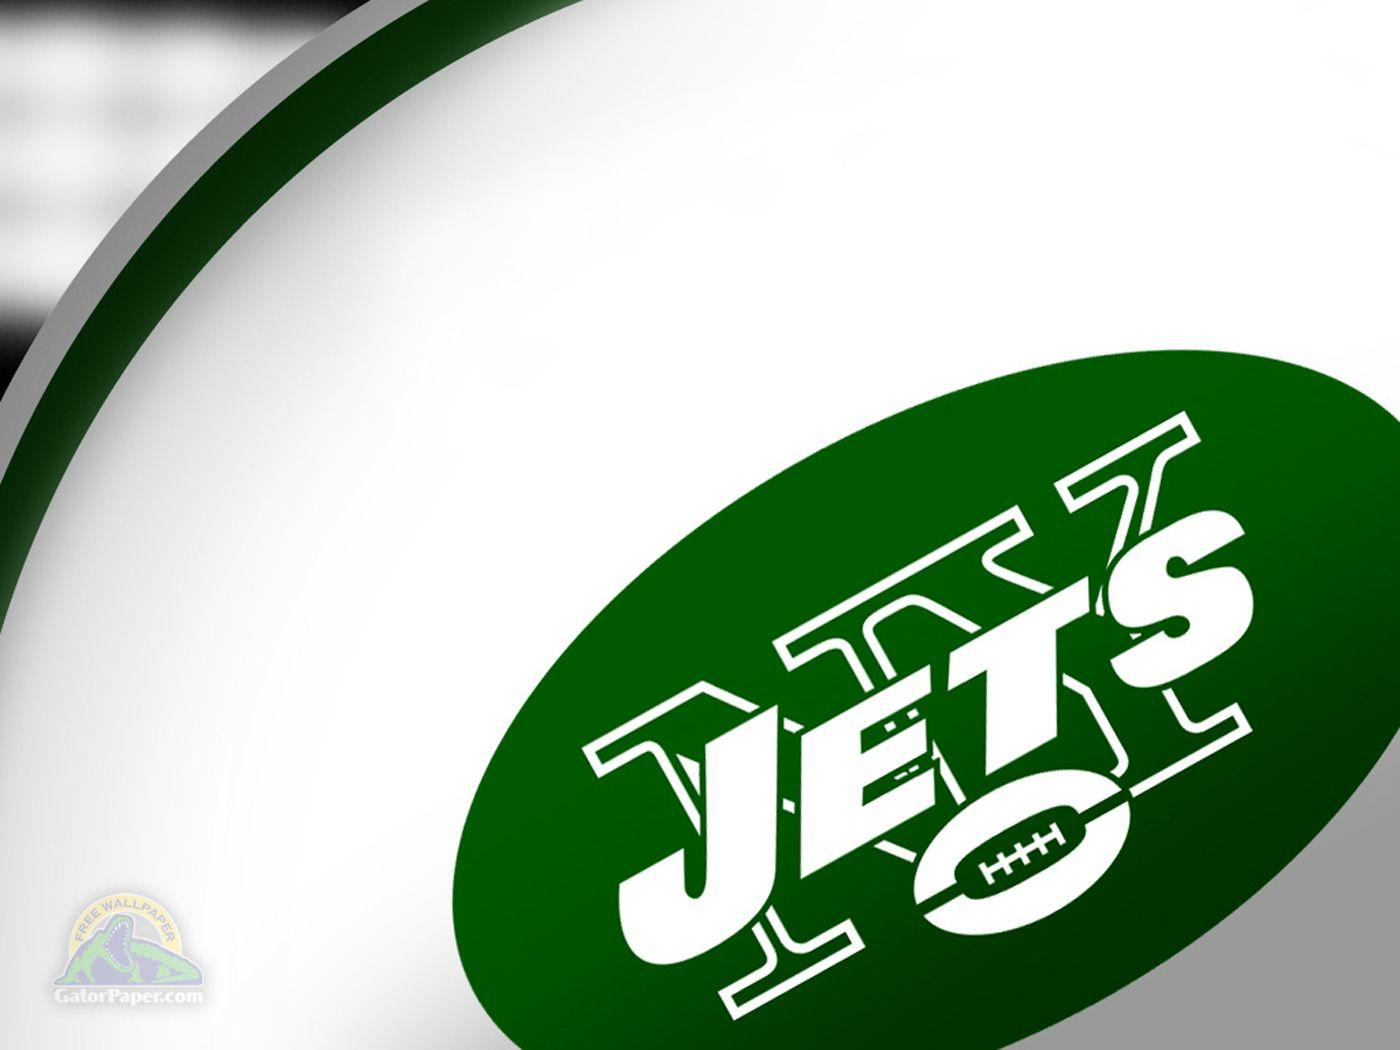 New York Jets Desktop Wallpaper Logos And Uniforms Of The New